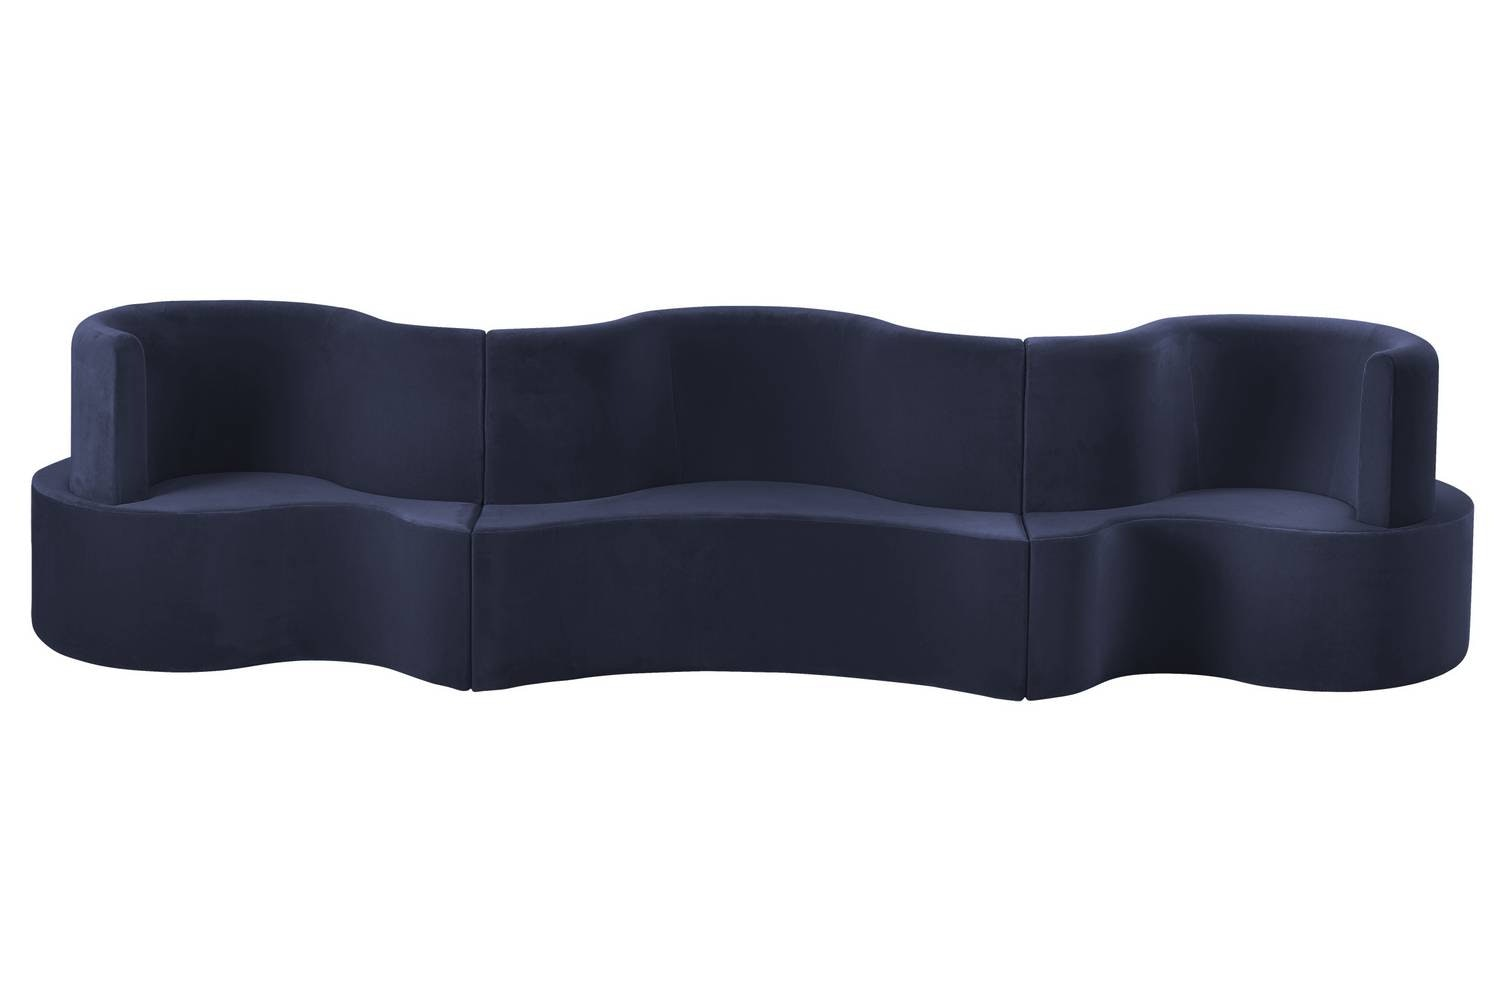 Cloverleaf Sofa - Extension Unit by Verner Panton for Verpan